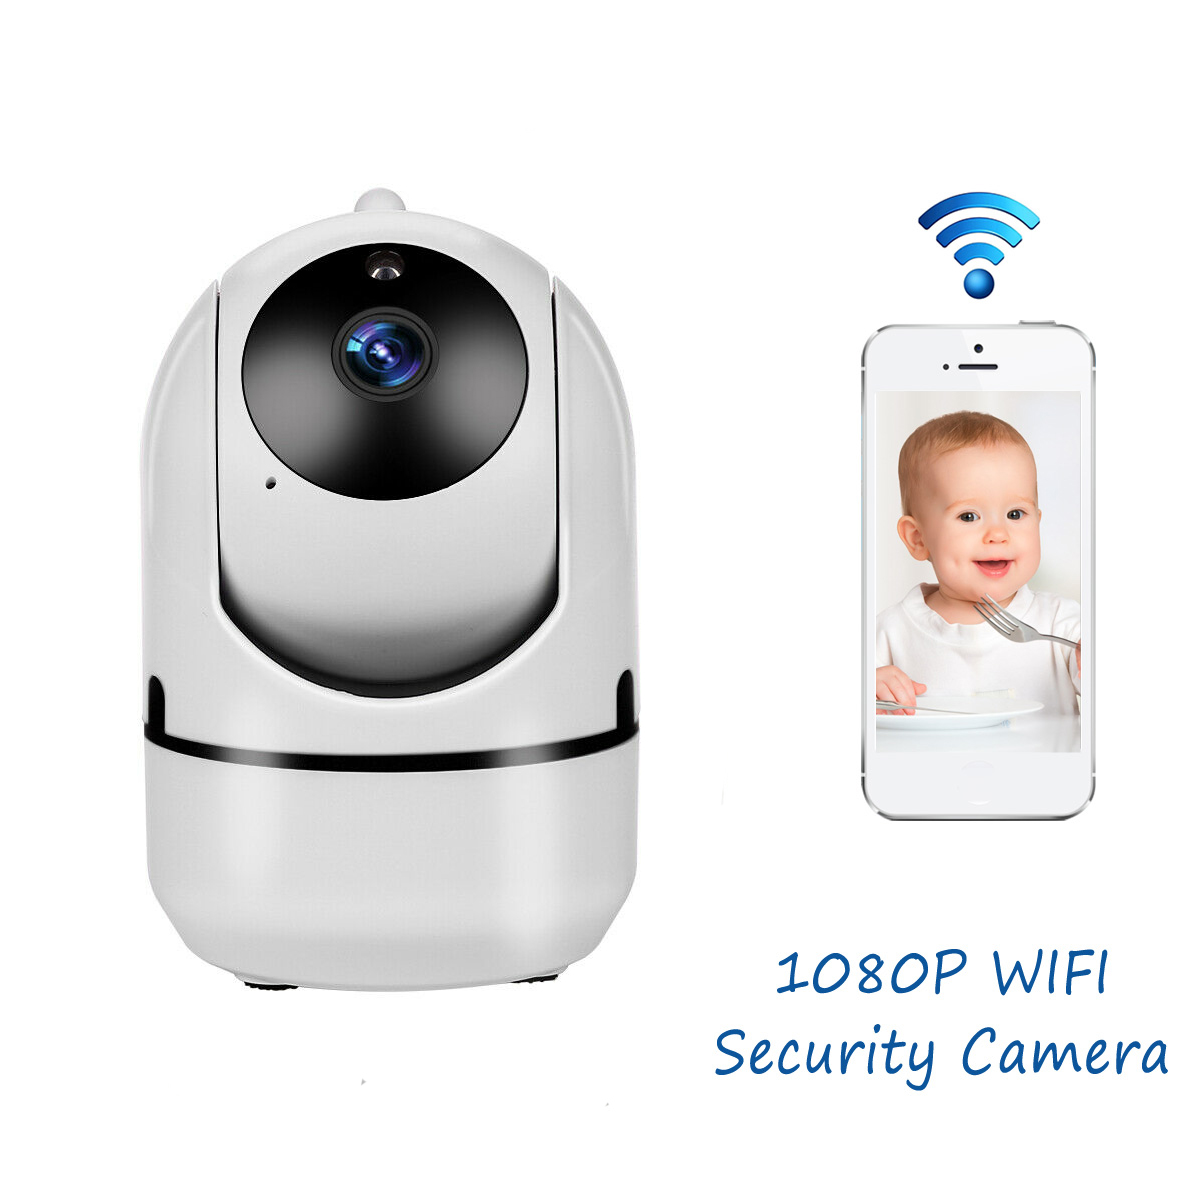 Wifi Camera Tracking Baby-Monitor Surveillance Mini Auto Security Home Wireless 1080p